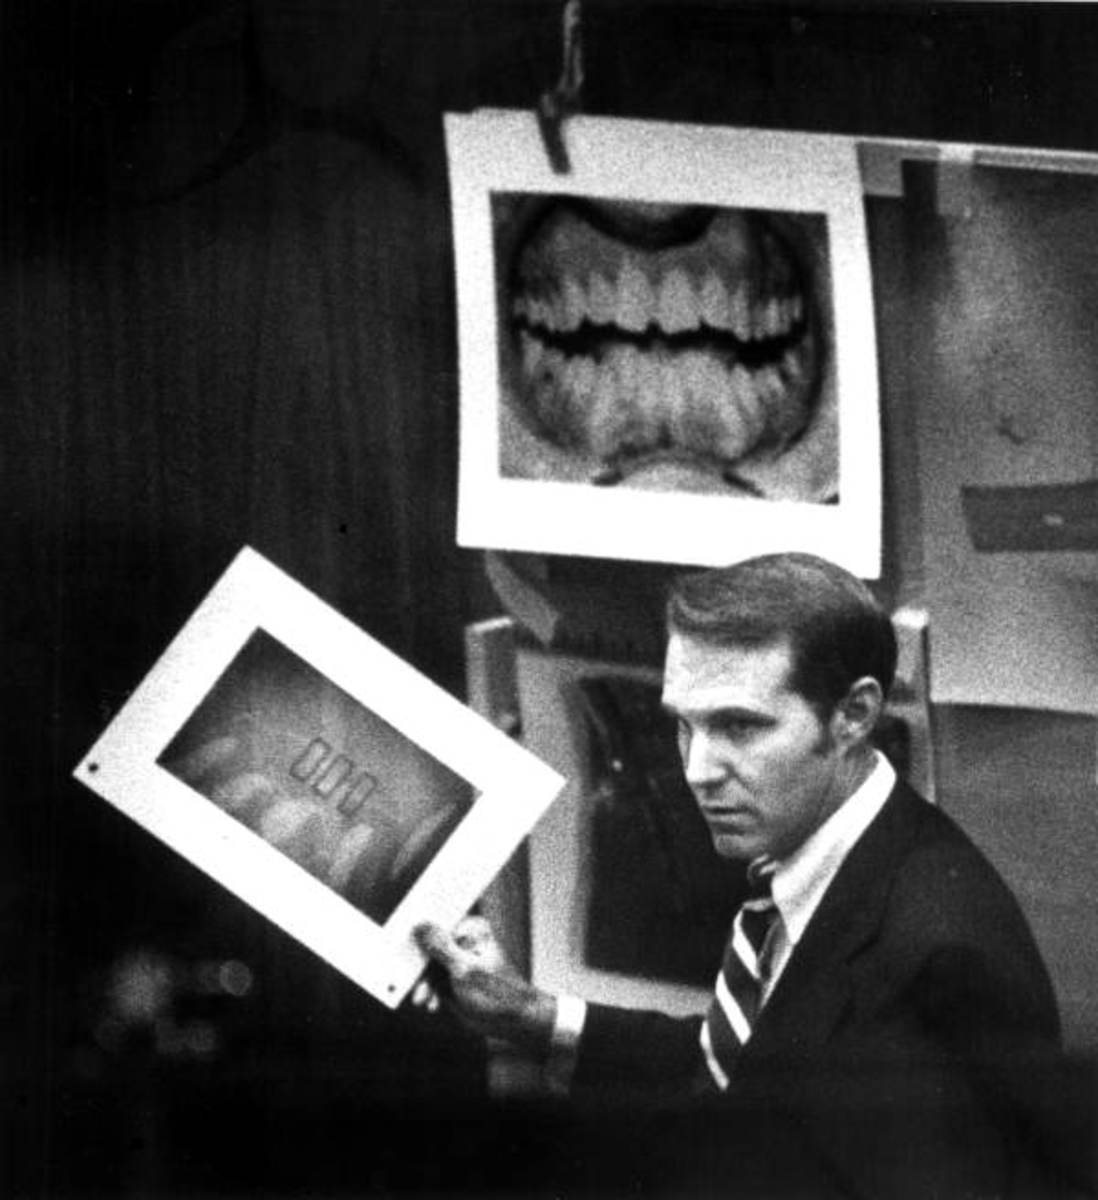 Forensic evidence presented in court comparing Ted Bundy's teeth to bite marks found on the victim.